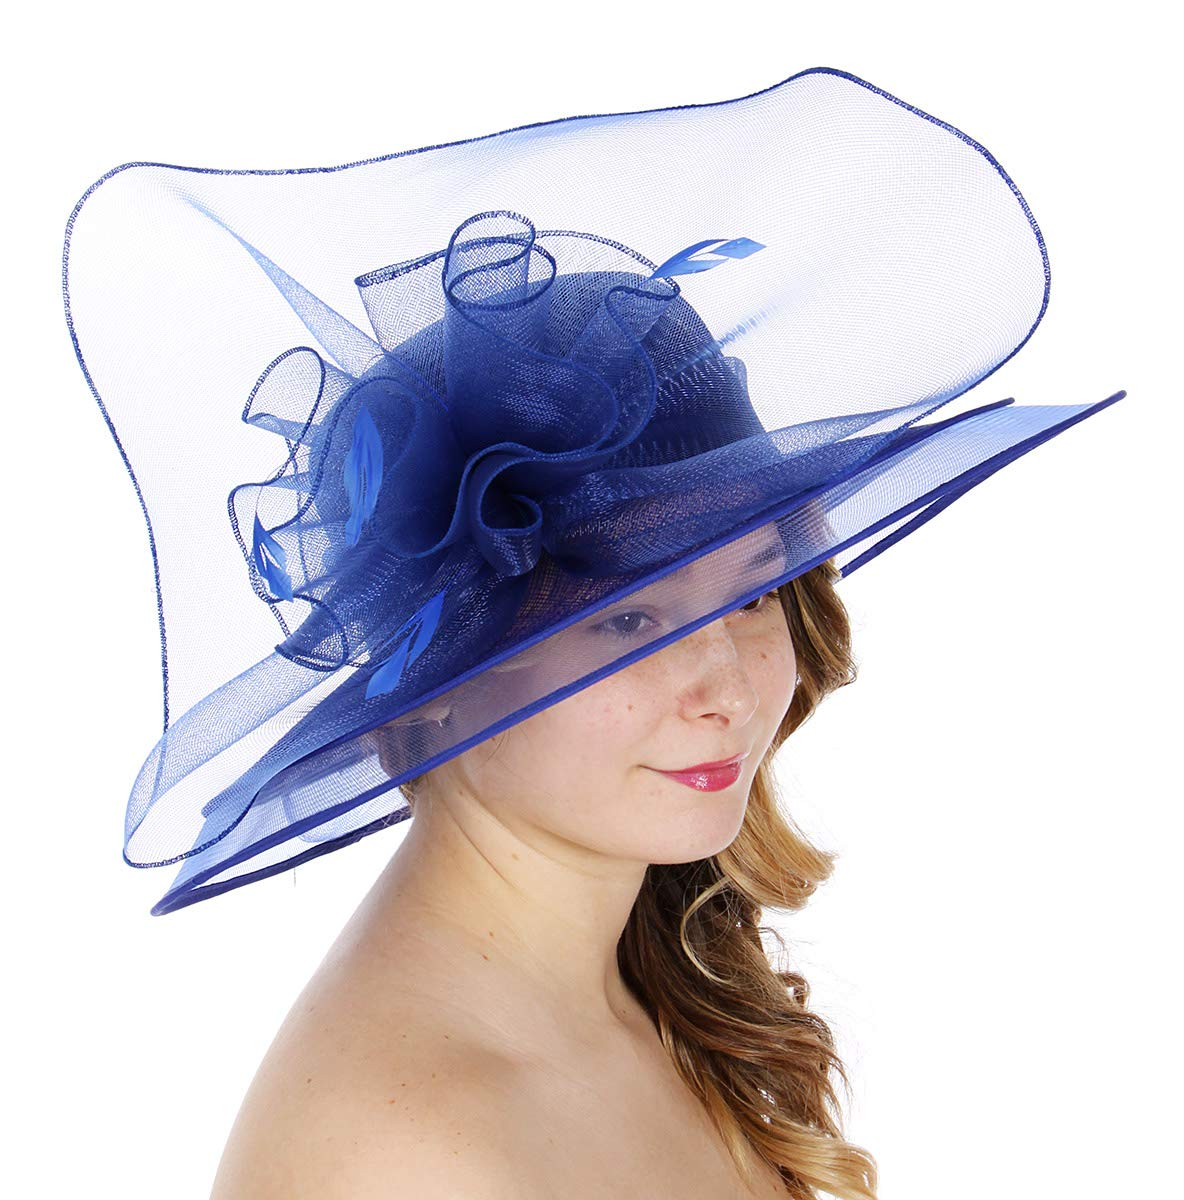 Dress Derby hat Women, for Church Party Kentucky Bridal Wedding Cocktail, Wide Brim Flower Cloche Bucket, Royal Blue 1